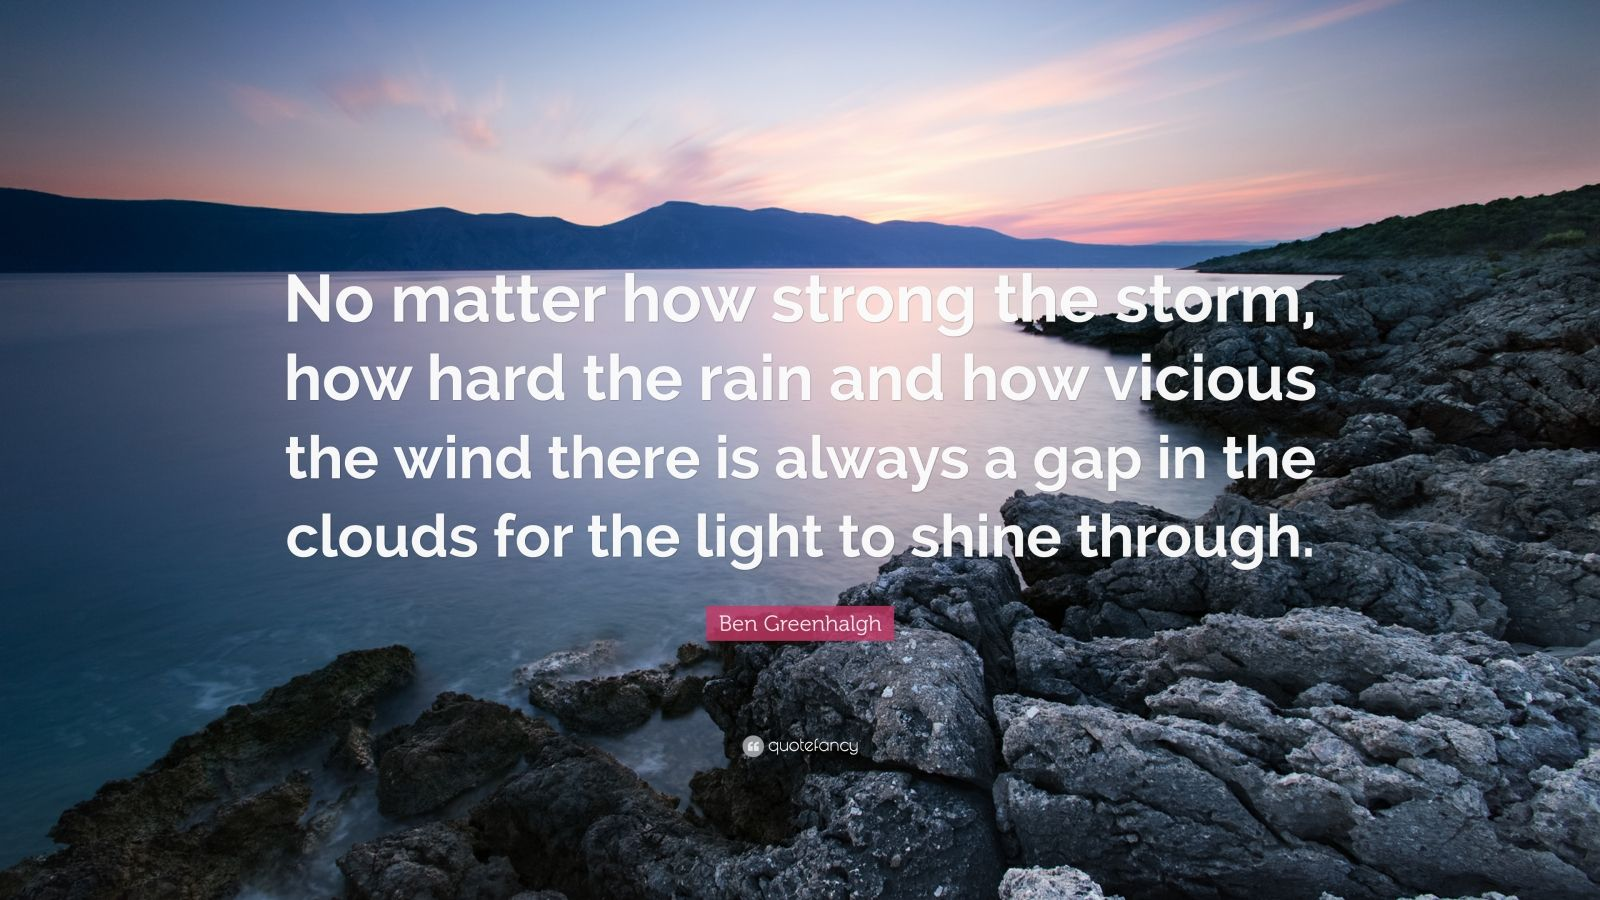 """Ben Greenhalgh Quote: """"No matter how strong the storm, how hard the rain and how vicious the wind there is always a gap in the clouds for the light to shine through."""""""